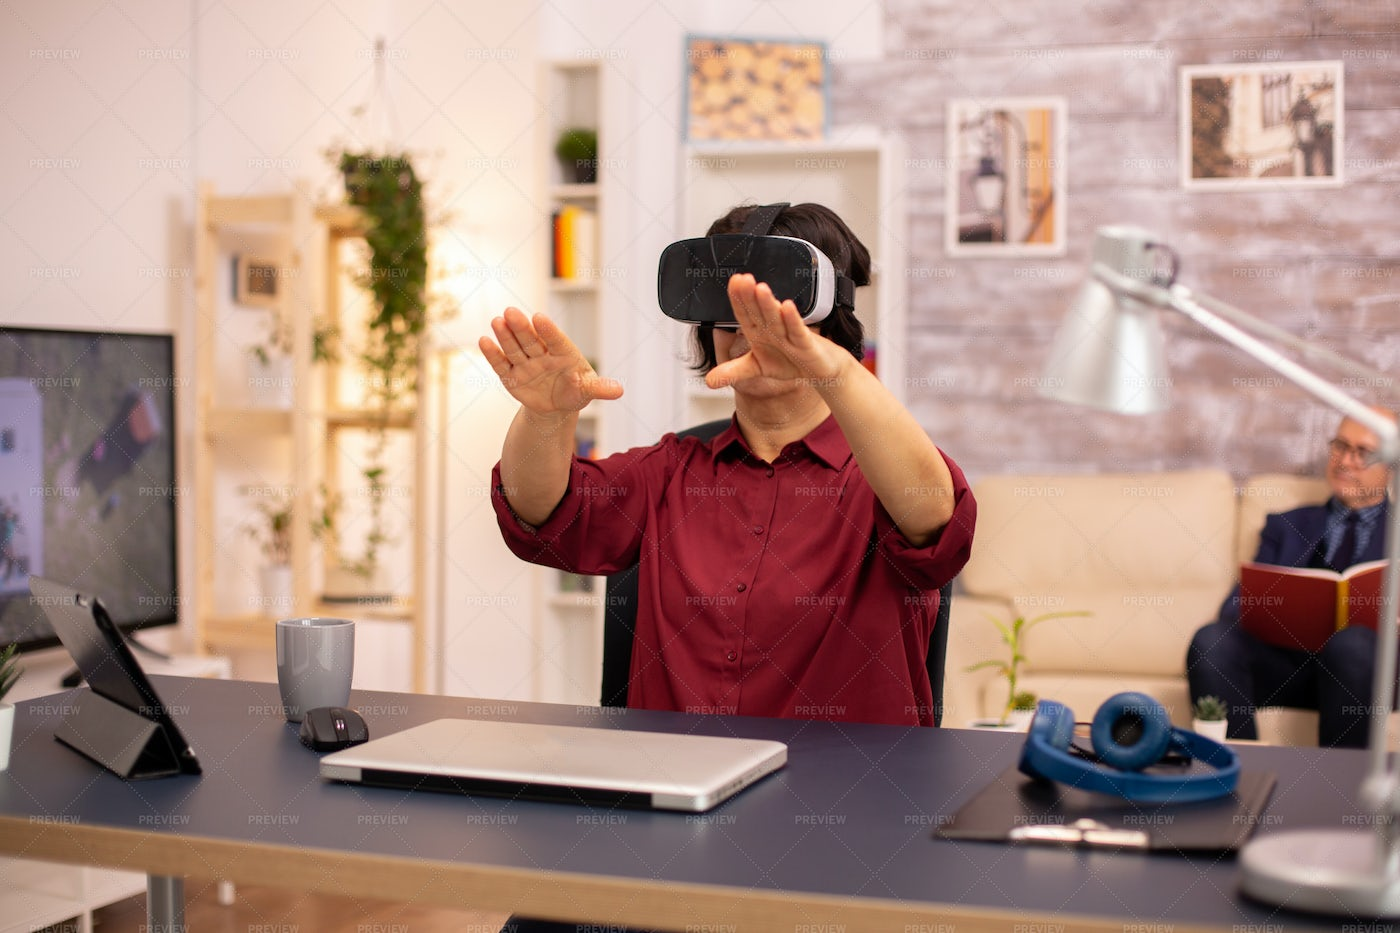 Interacting With VR: Stock Photos